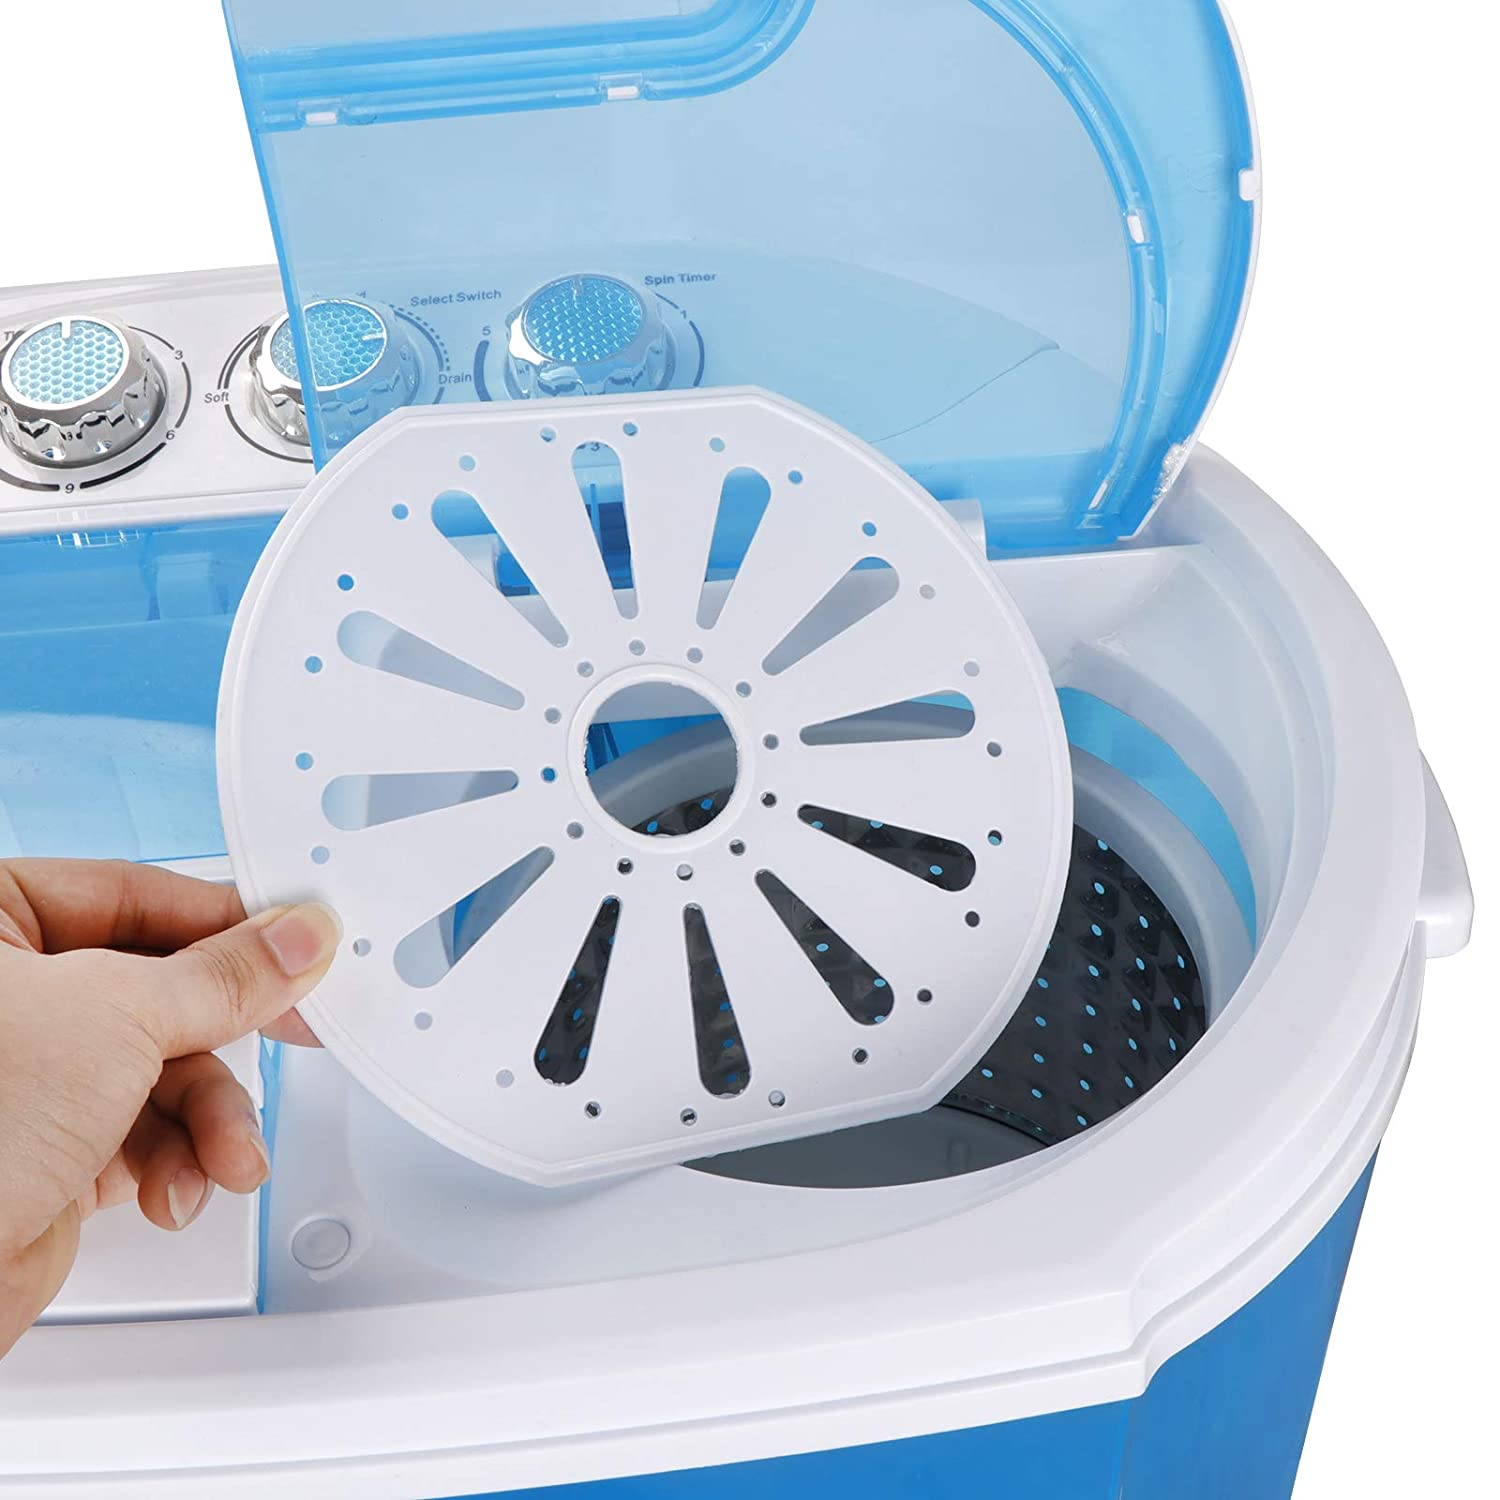 SUPER DEAL Portable Washing Machine Twin Tub 10lbs Capacity with Spin Cycle Dryer Lightweight for Apartments Dorm Rooms